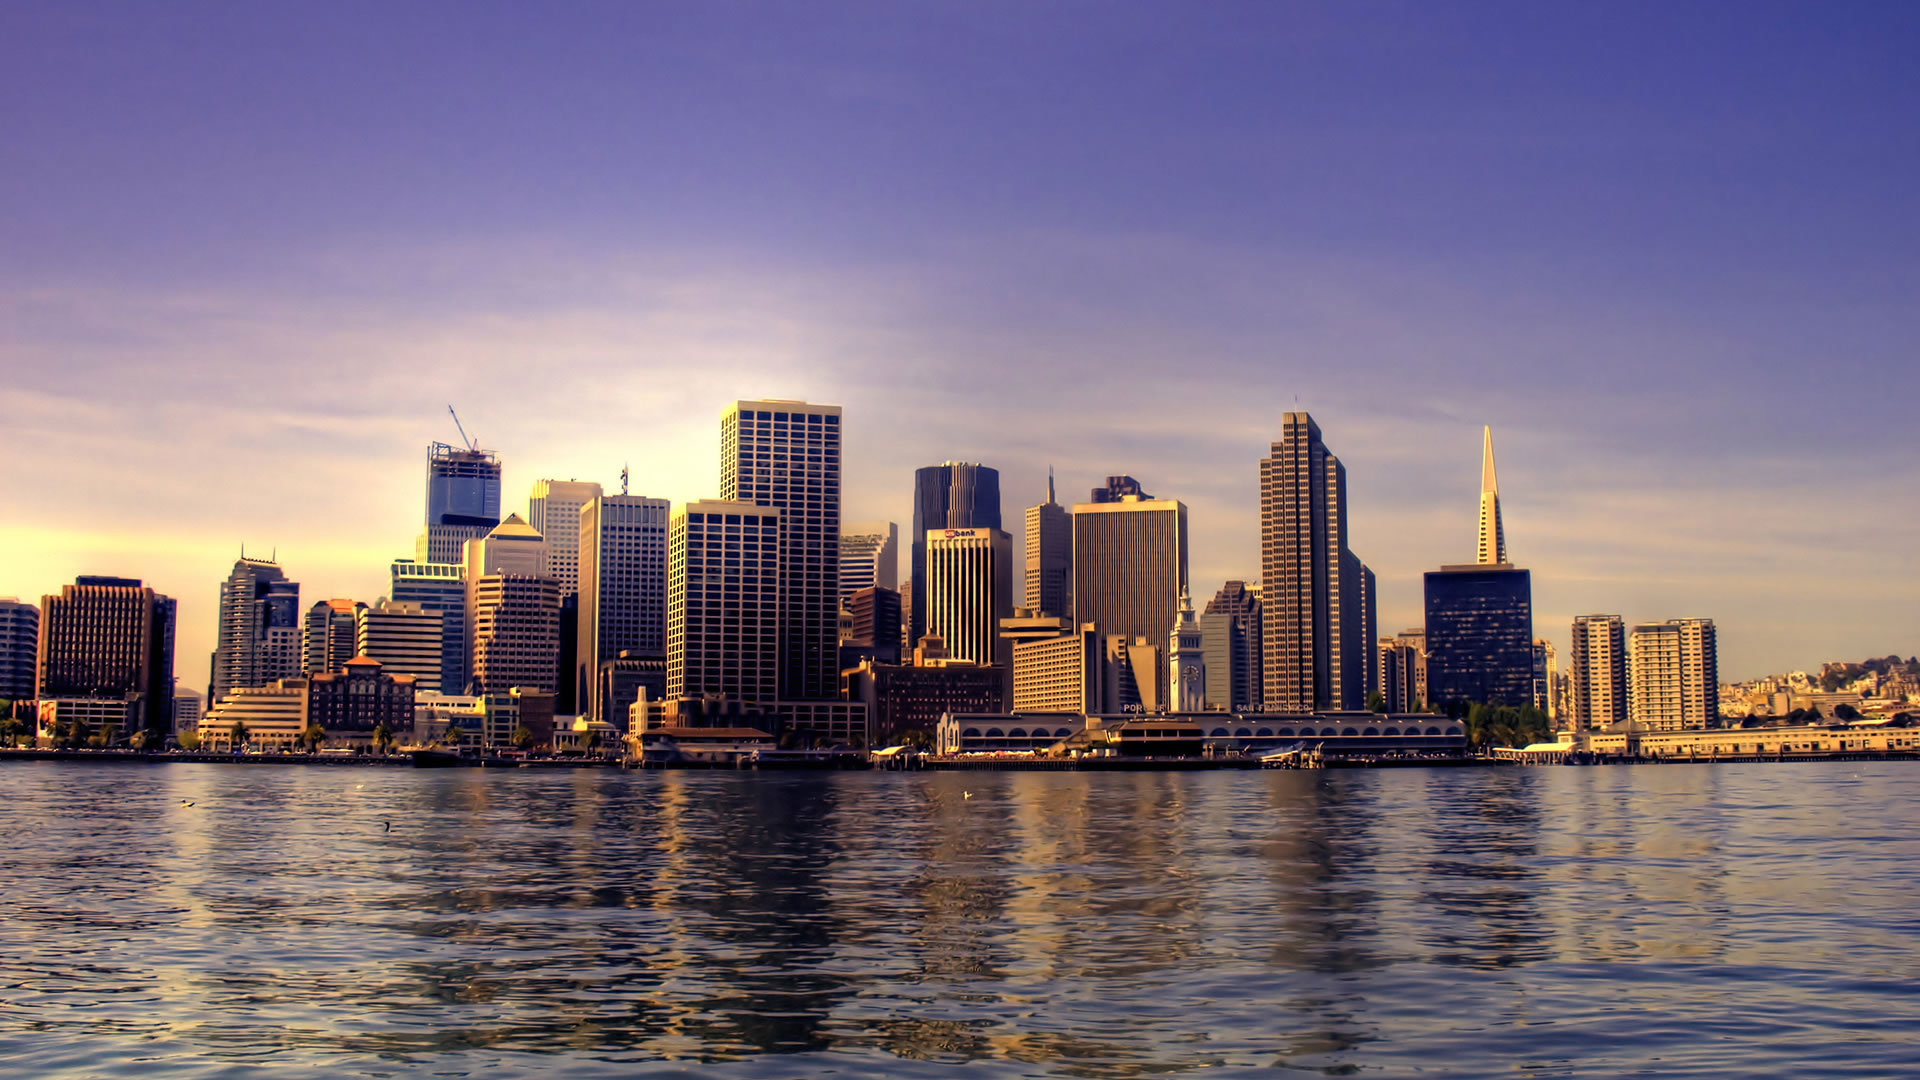 21211 download wallpaper Landscape, Cities, Sea screensavers and pictures for free